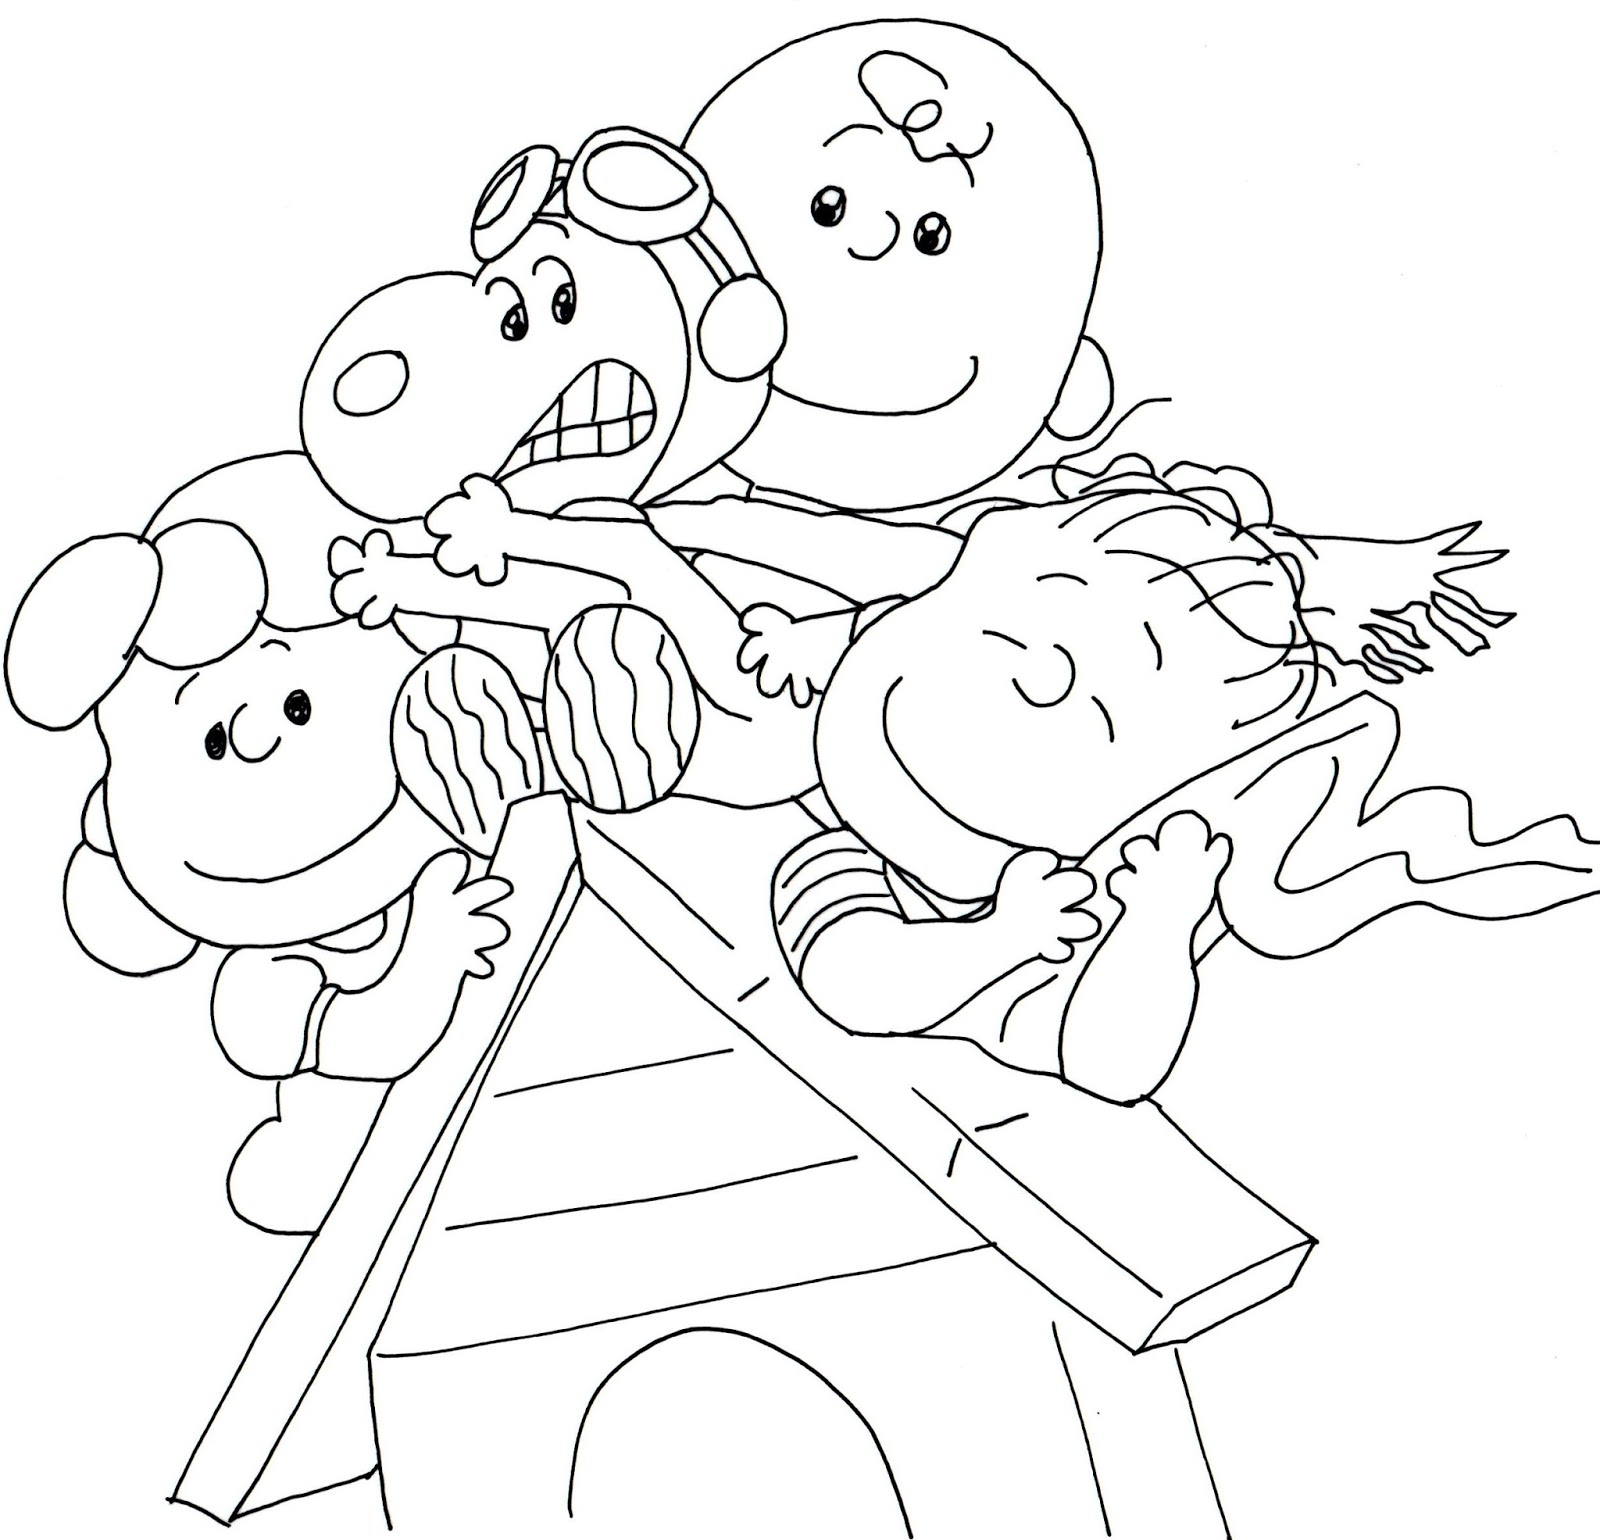 Free Printable Coloring Page For Charlie Brown And Snoopy Together With Lucy Linus On Top Of Snoopys House